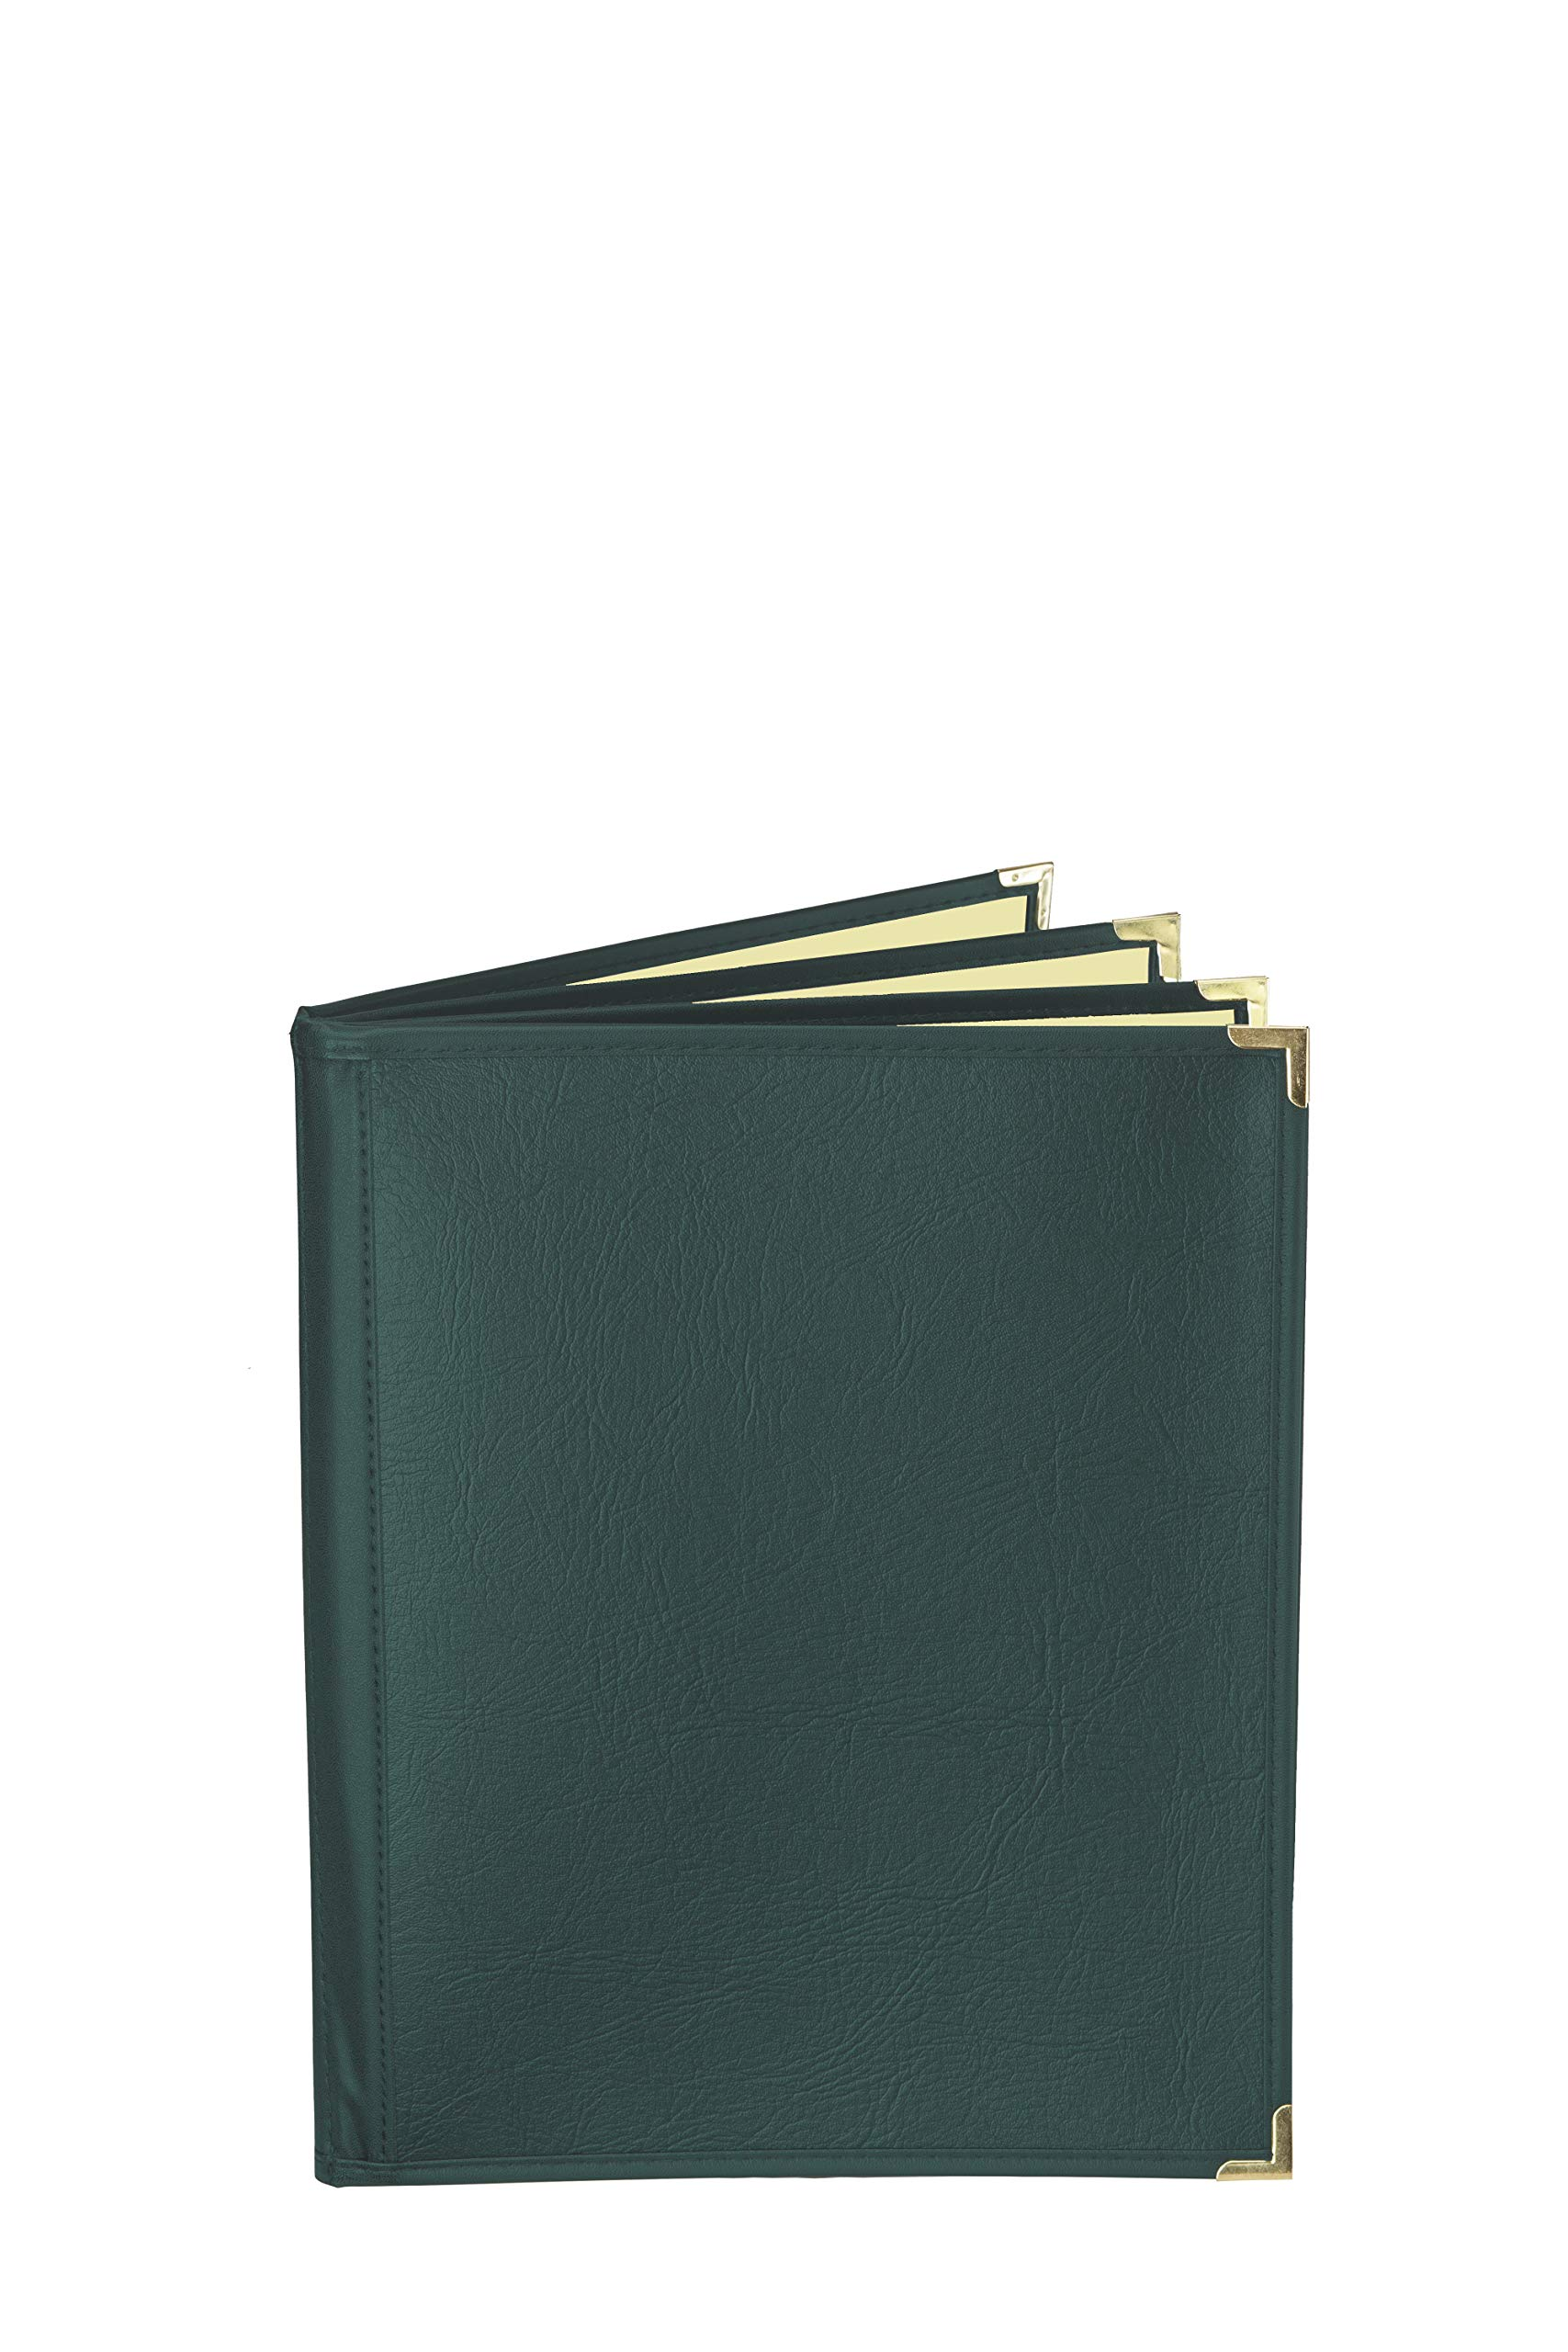 JR SALES CORP, FlexMC-E6V814, 25 Pack of Premium semi-flexible Menu Covers with inside café style pockets, Soft leather-like supported cover with crystal clear vinyl inside pockets. 6 view Booklet. Holds 8.5'' x 14'' Inserts. Color: Green